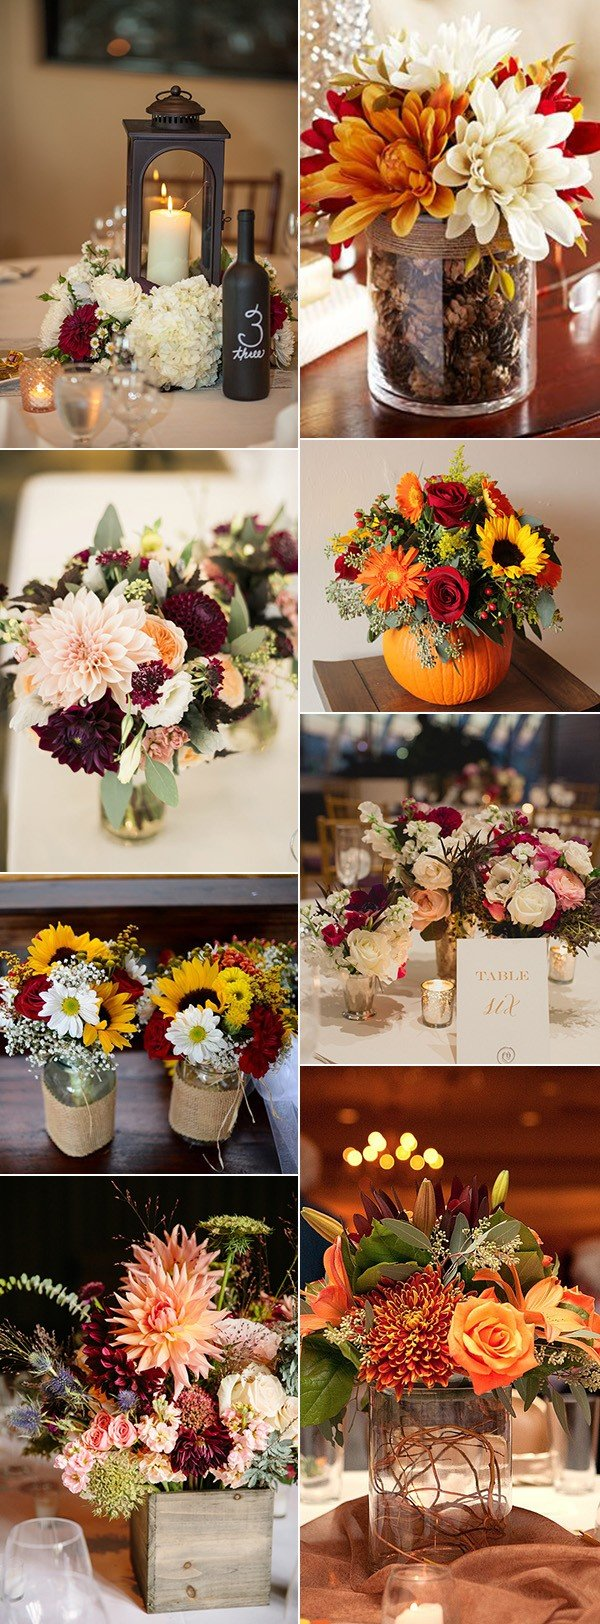 70+ Amazing Fall Wedding Ideas for 2018 - Page 2 of 4 - Oh ...